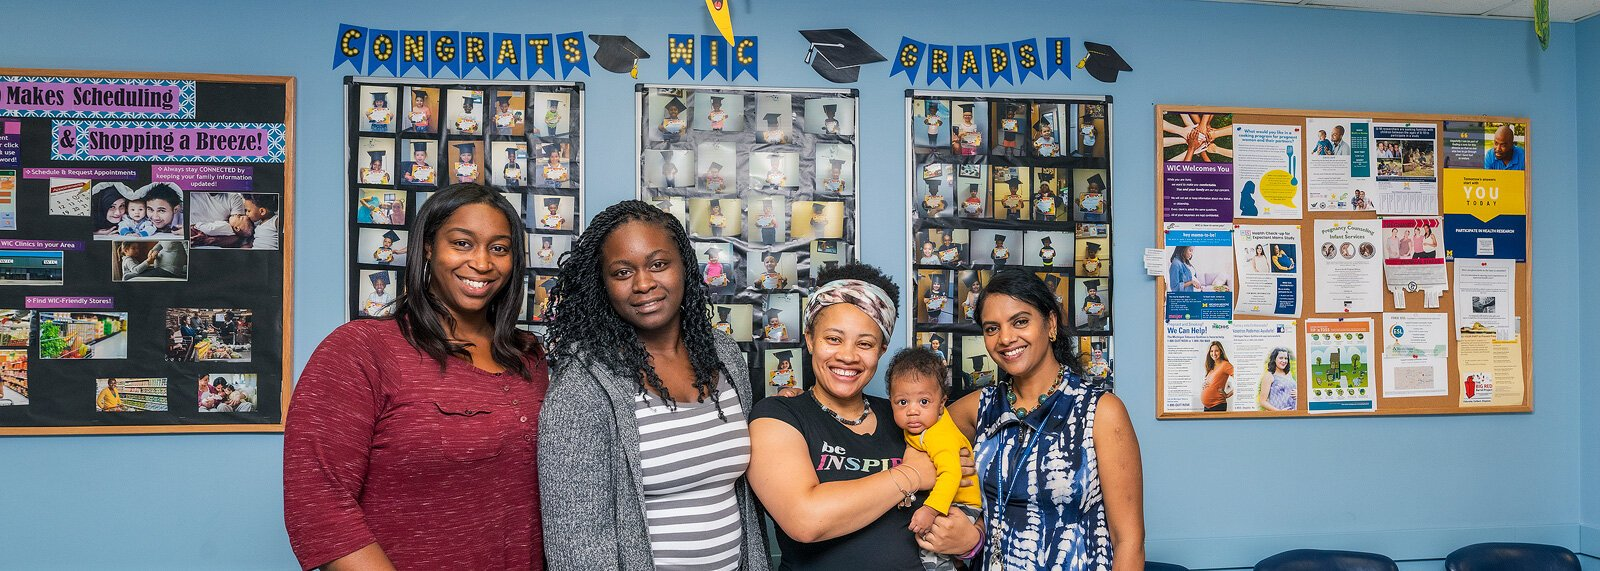 Ronda Tredway, Dera Williams, Najma Treadwell with son Jahleel, and Gayathri Akella at the Washtenaw WIC office.